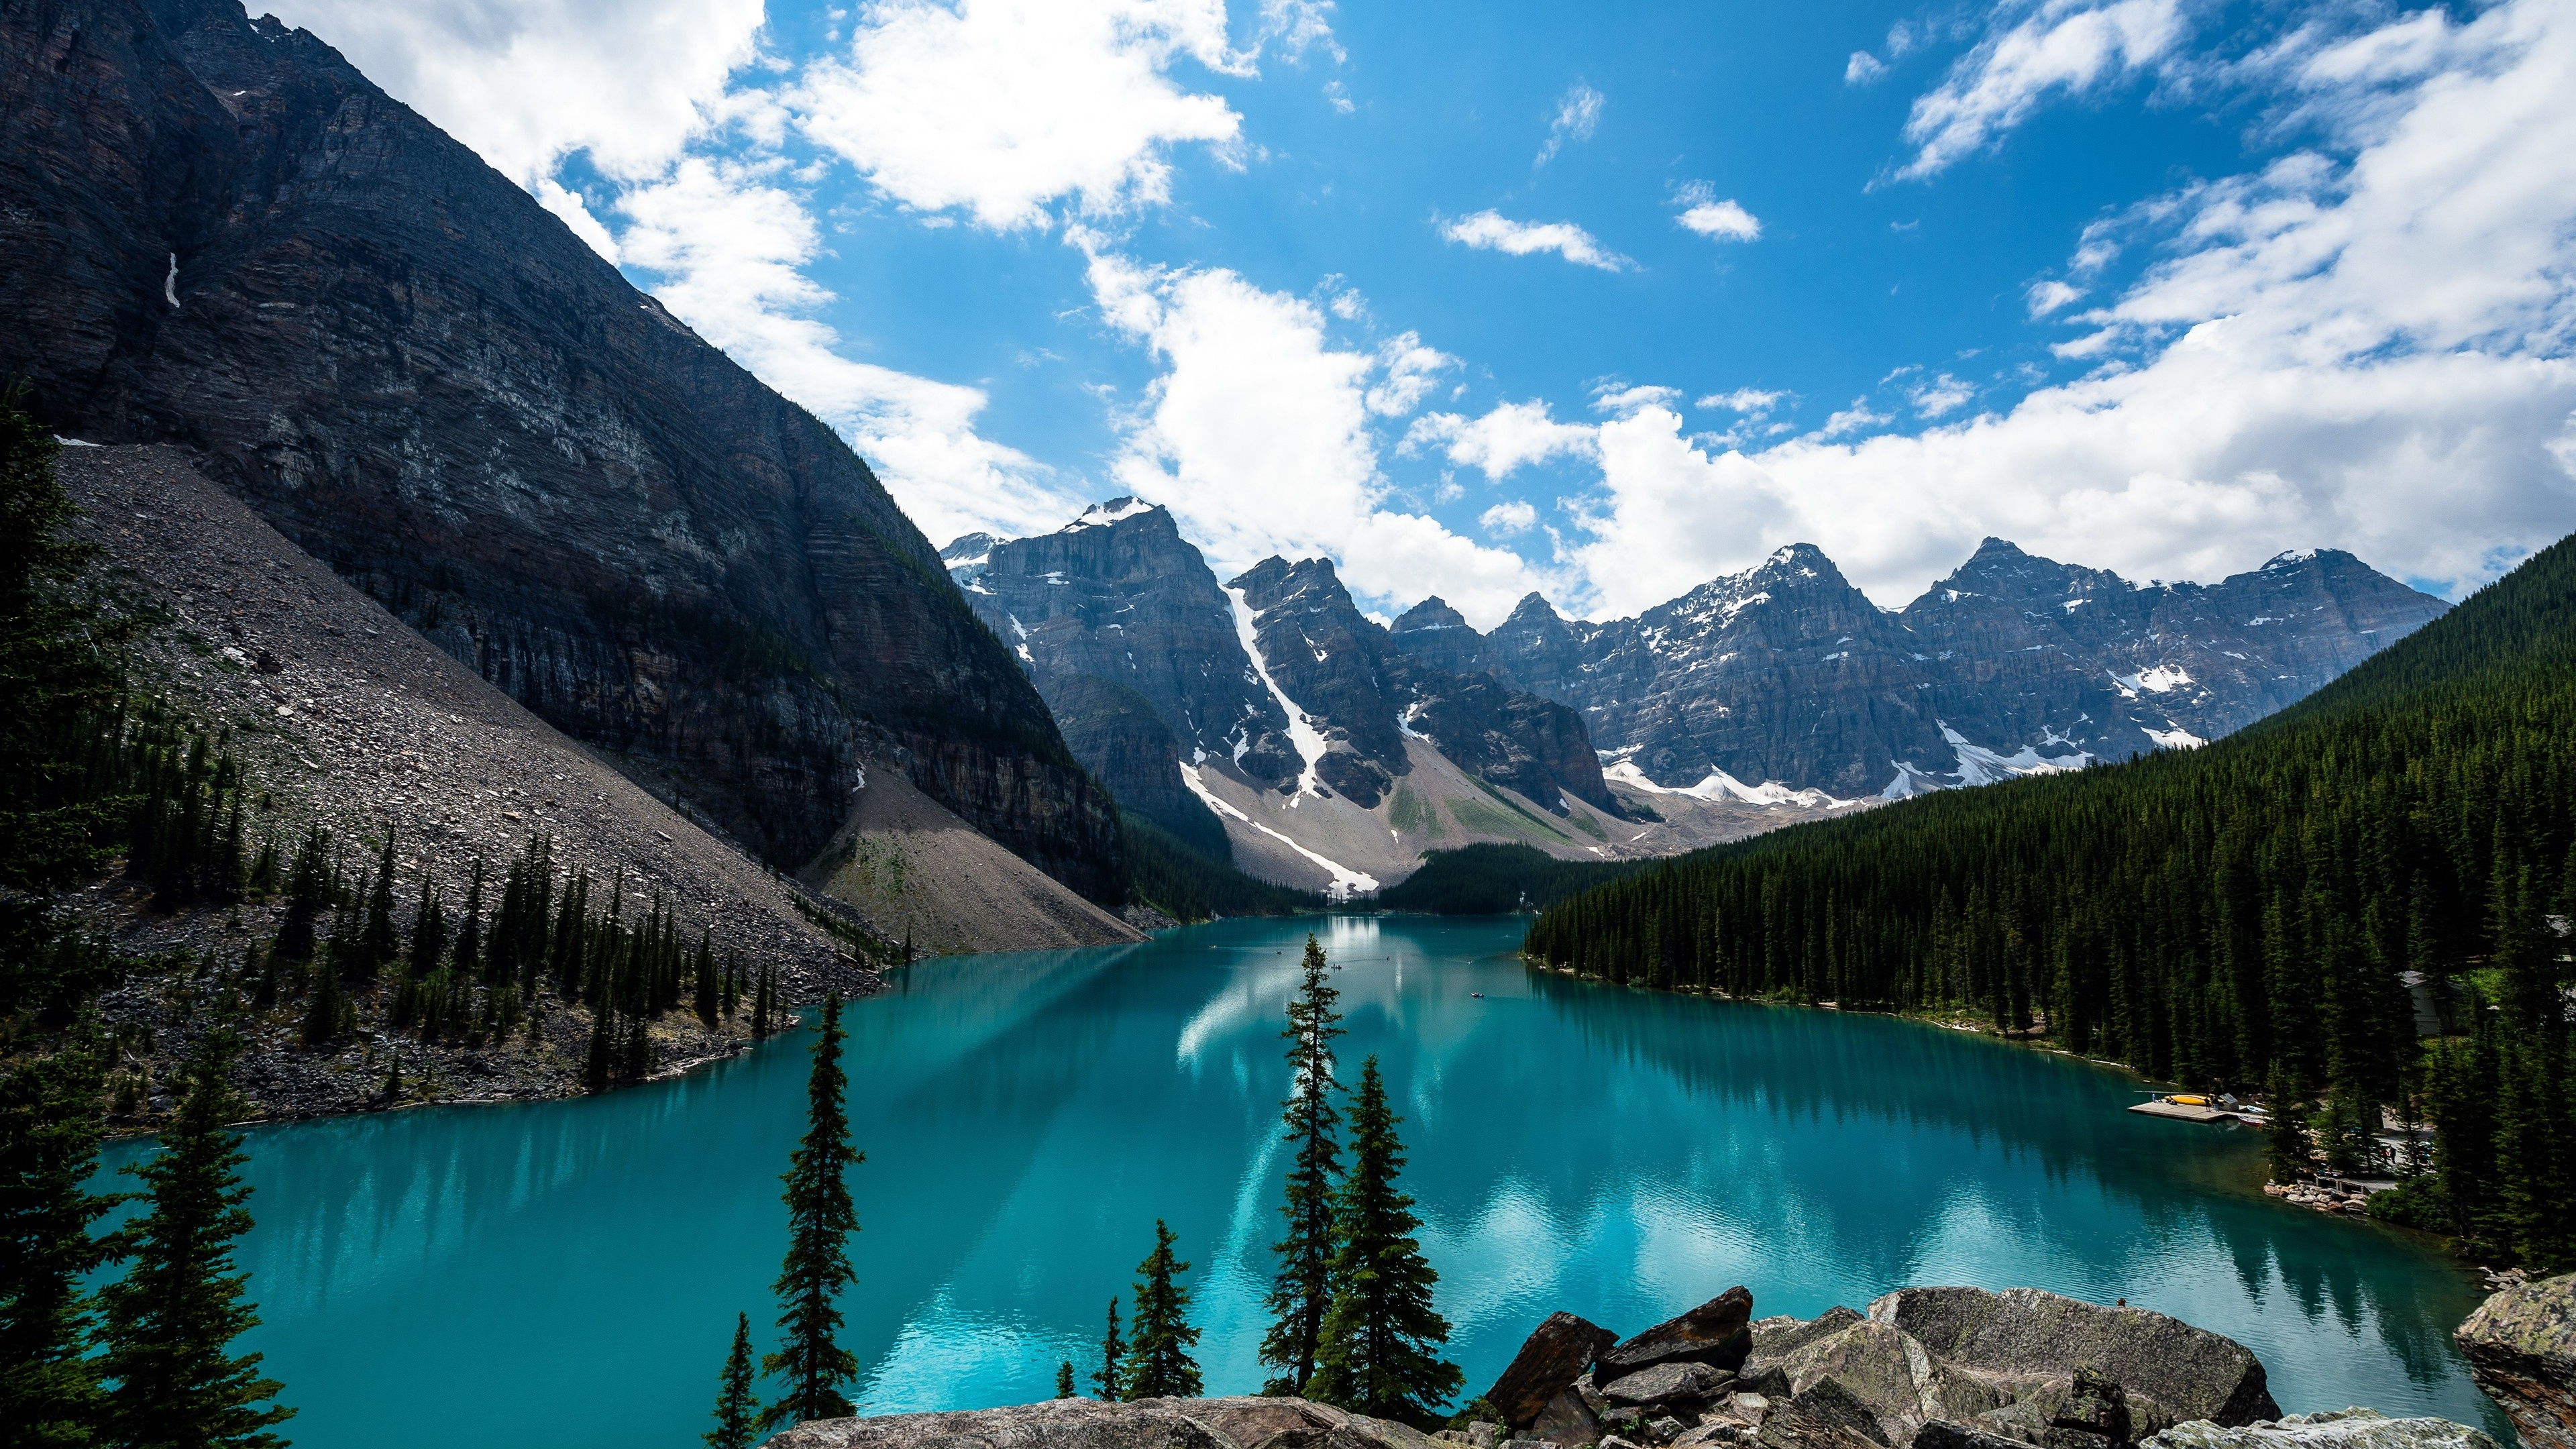 Images of Lake Louise | 3840x2160